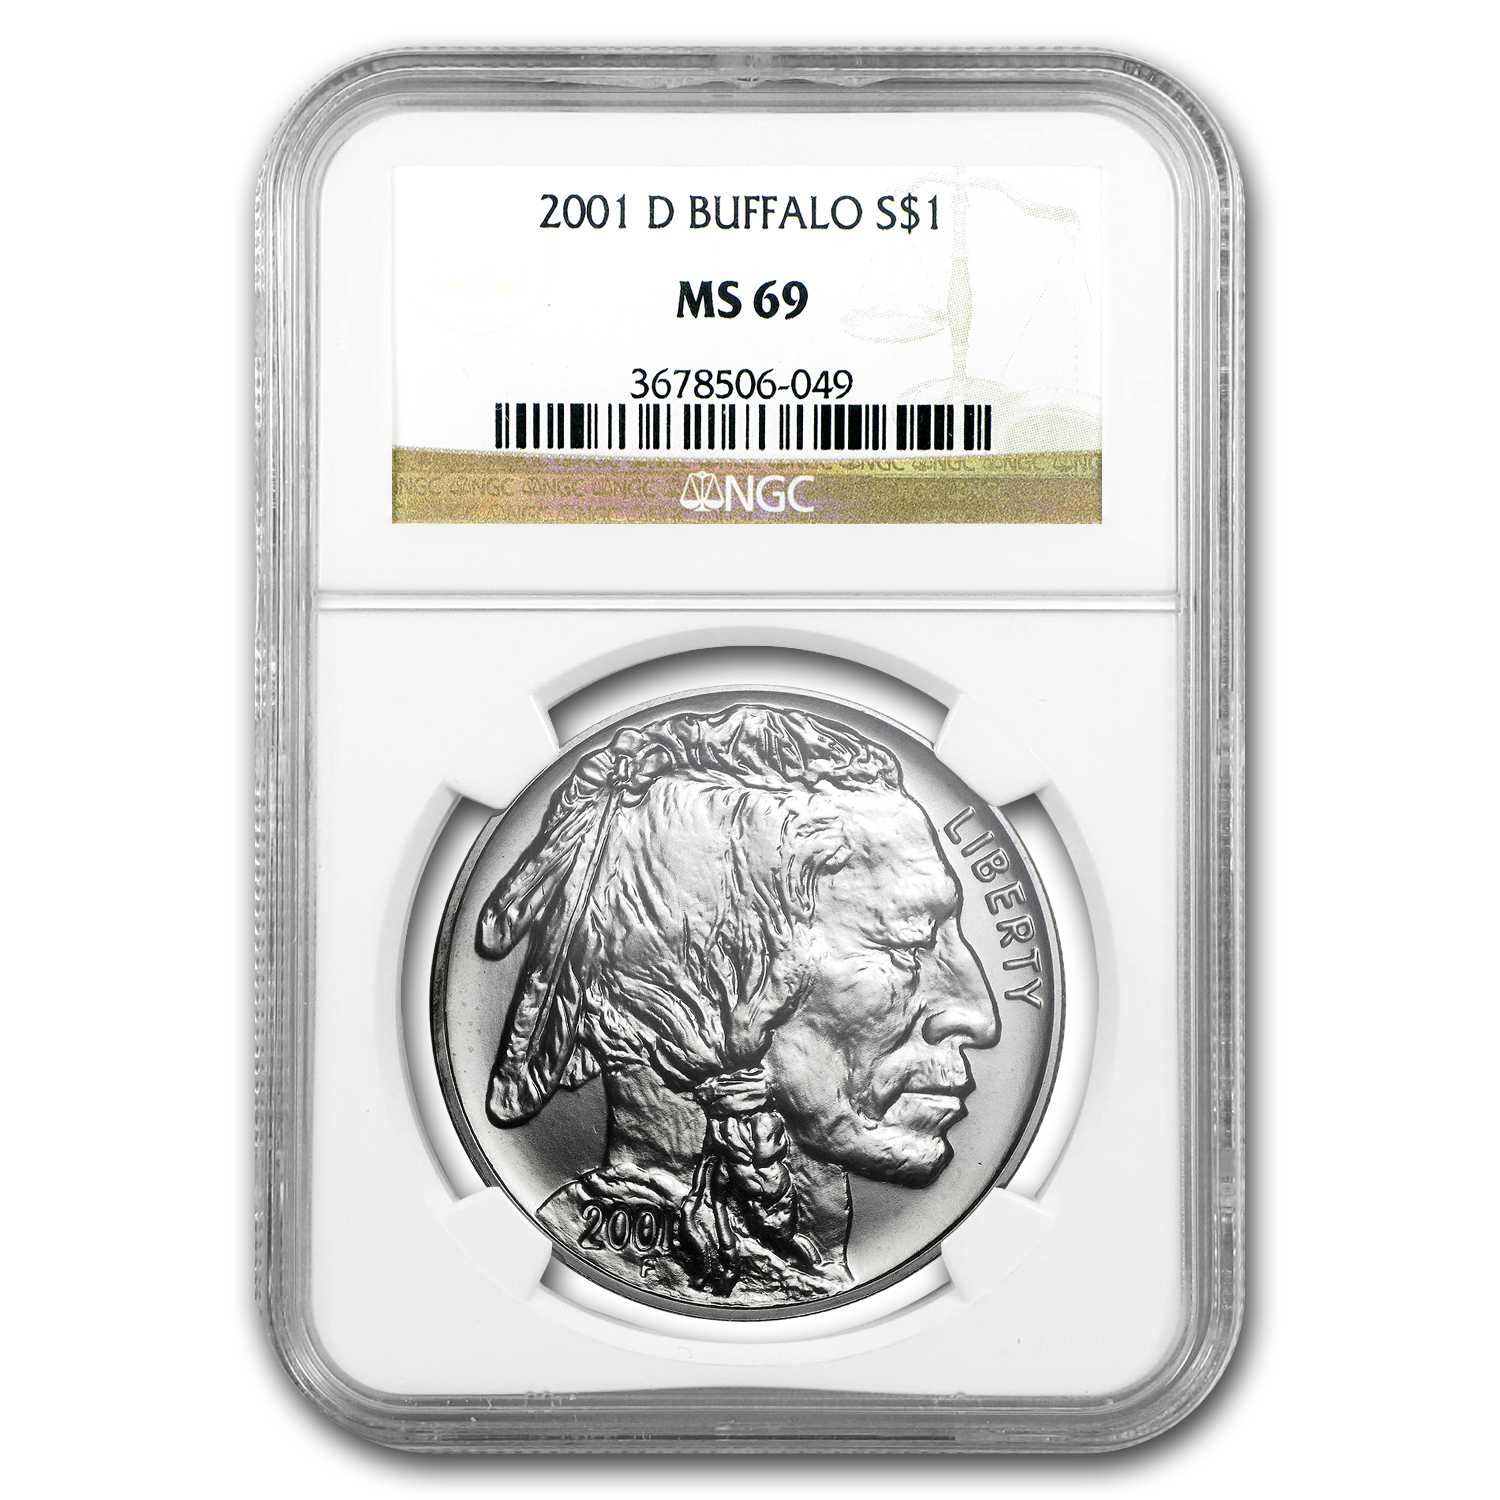 2001-D Buffalo $1 Silver Commemorative MS-69 NGC